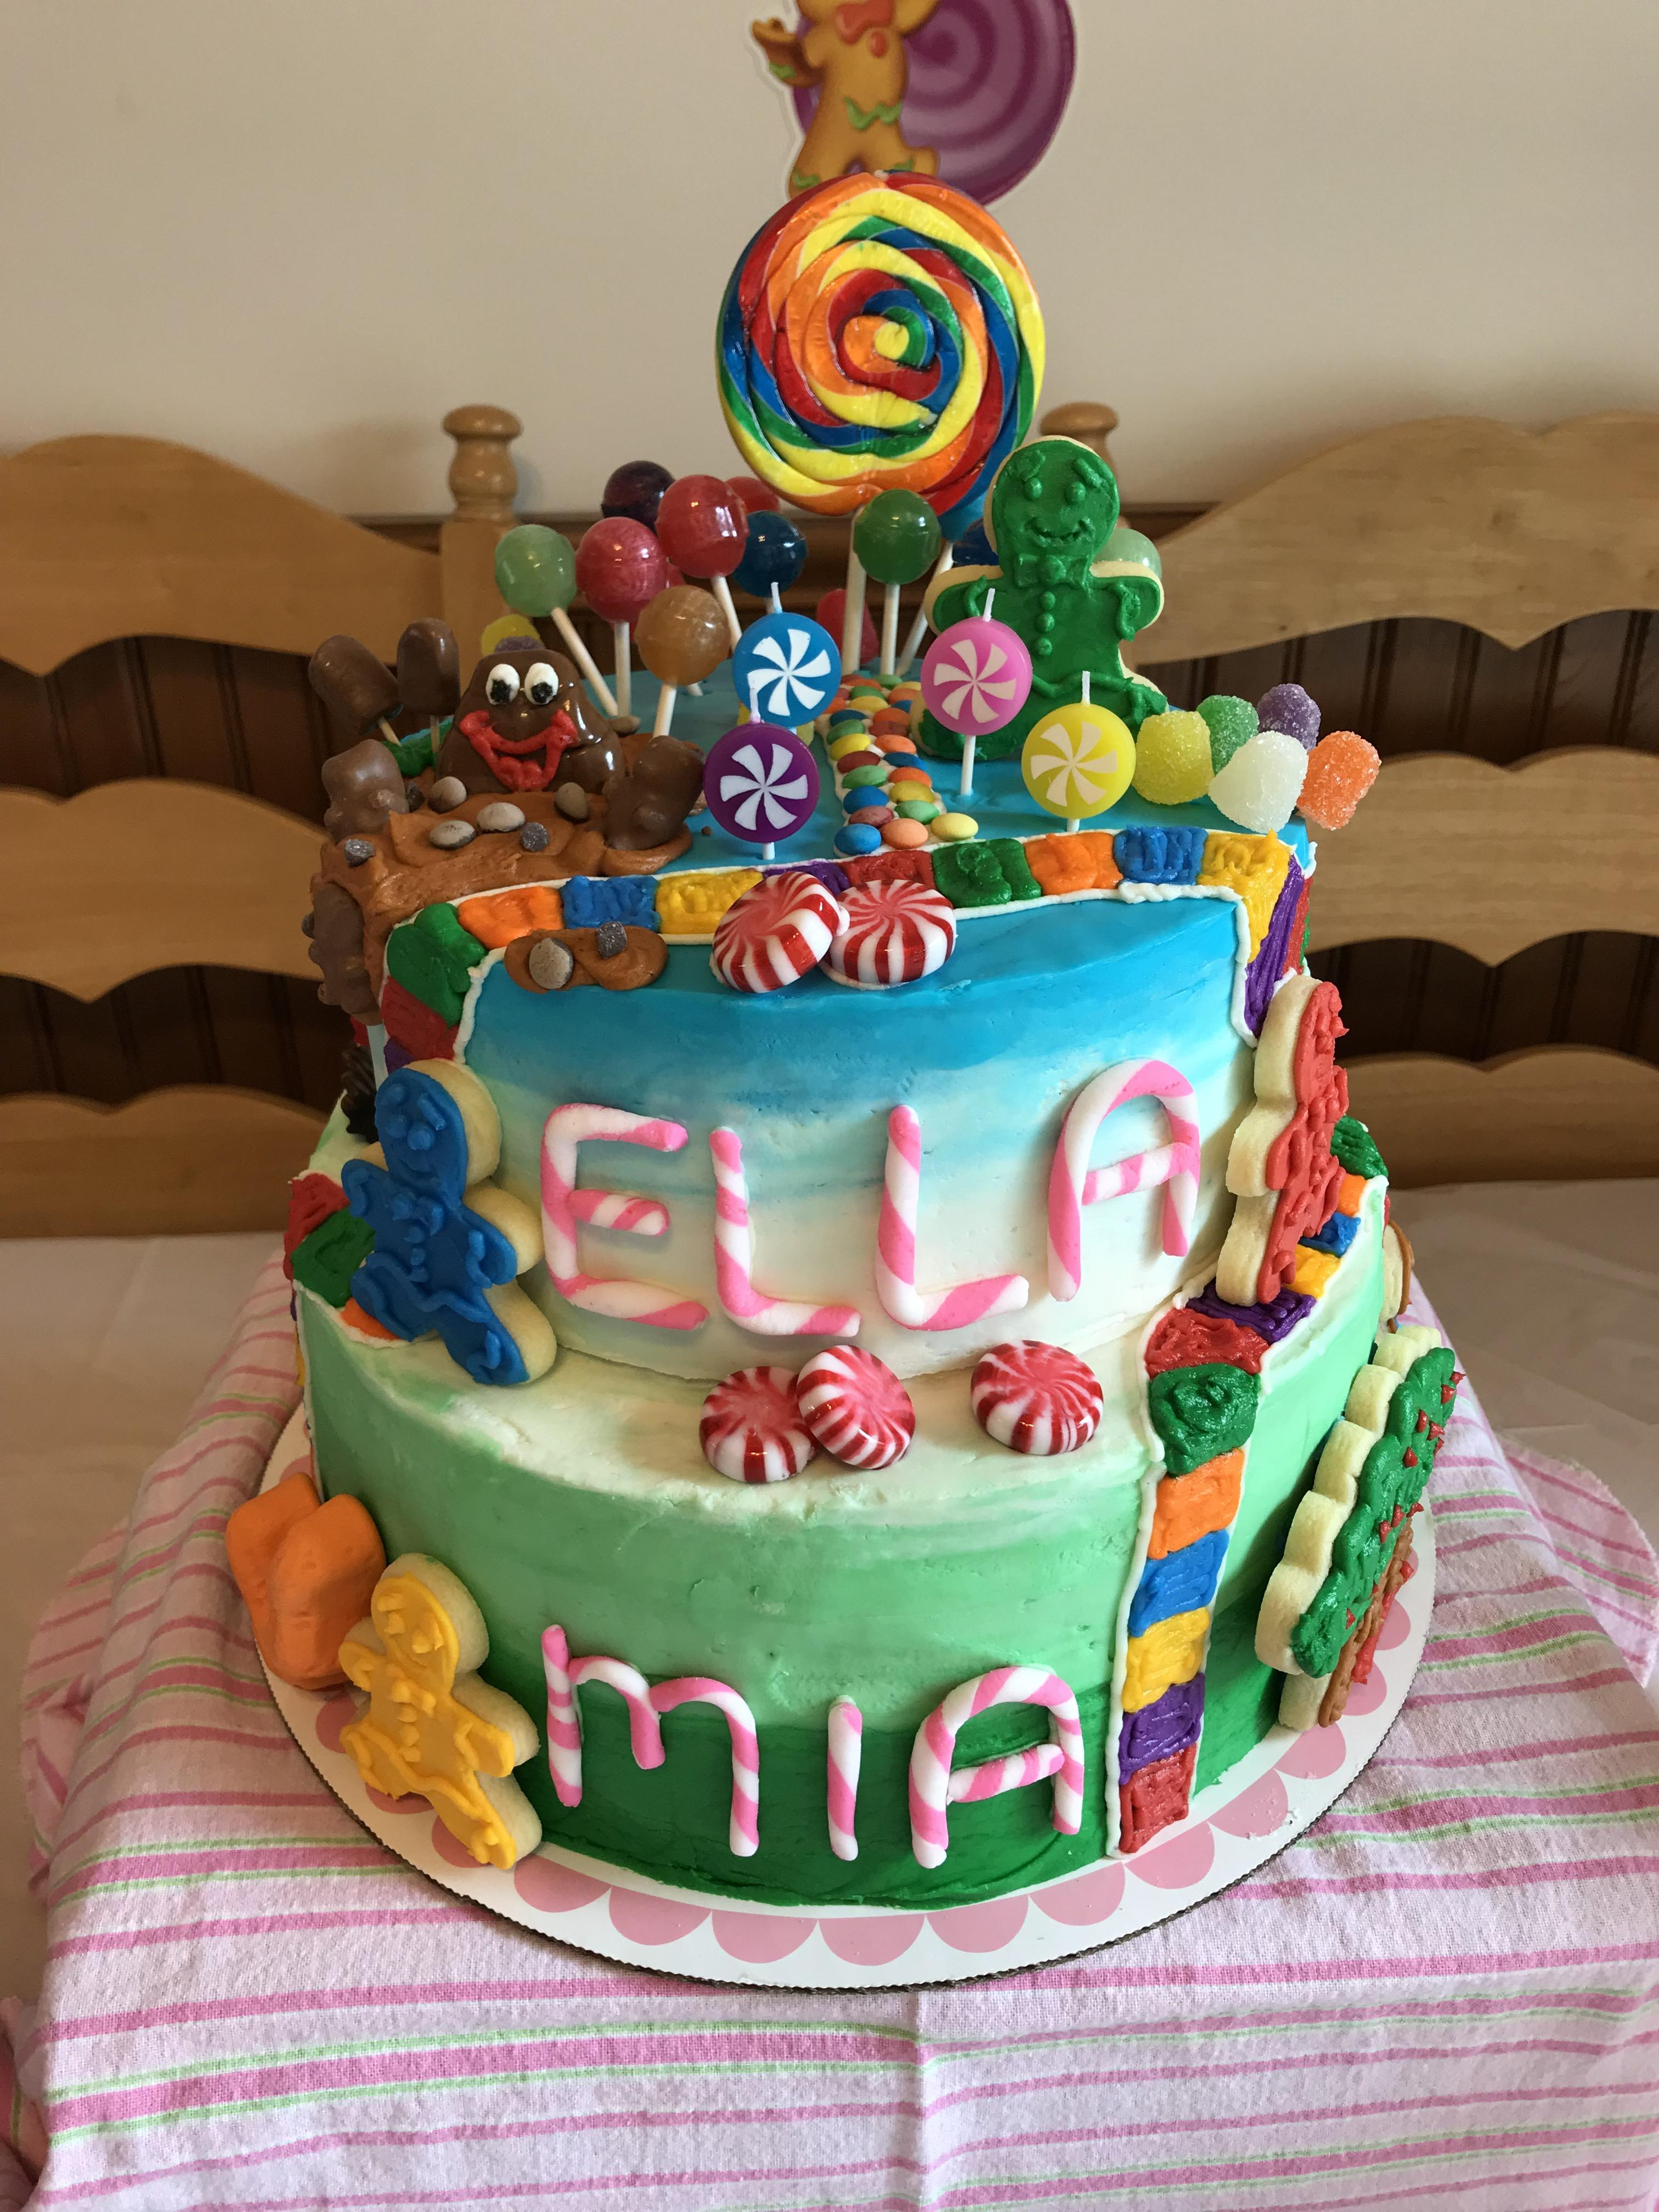 Candyland Birthday Cake My Sisters Made A Candyland Birthday Cake Baking